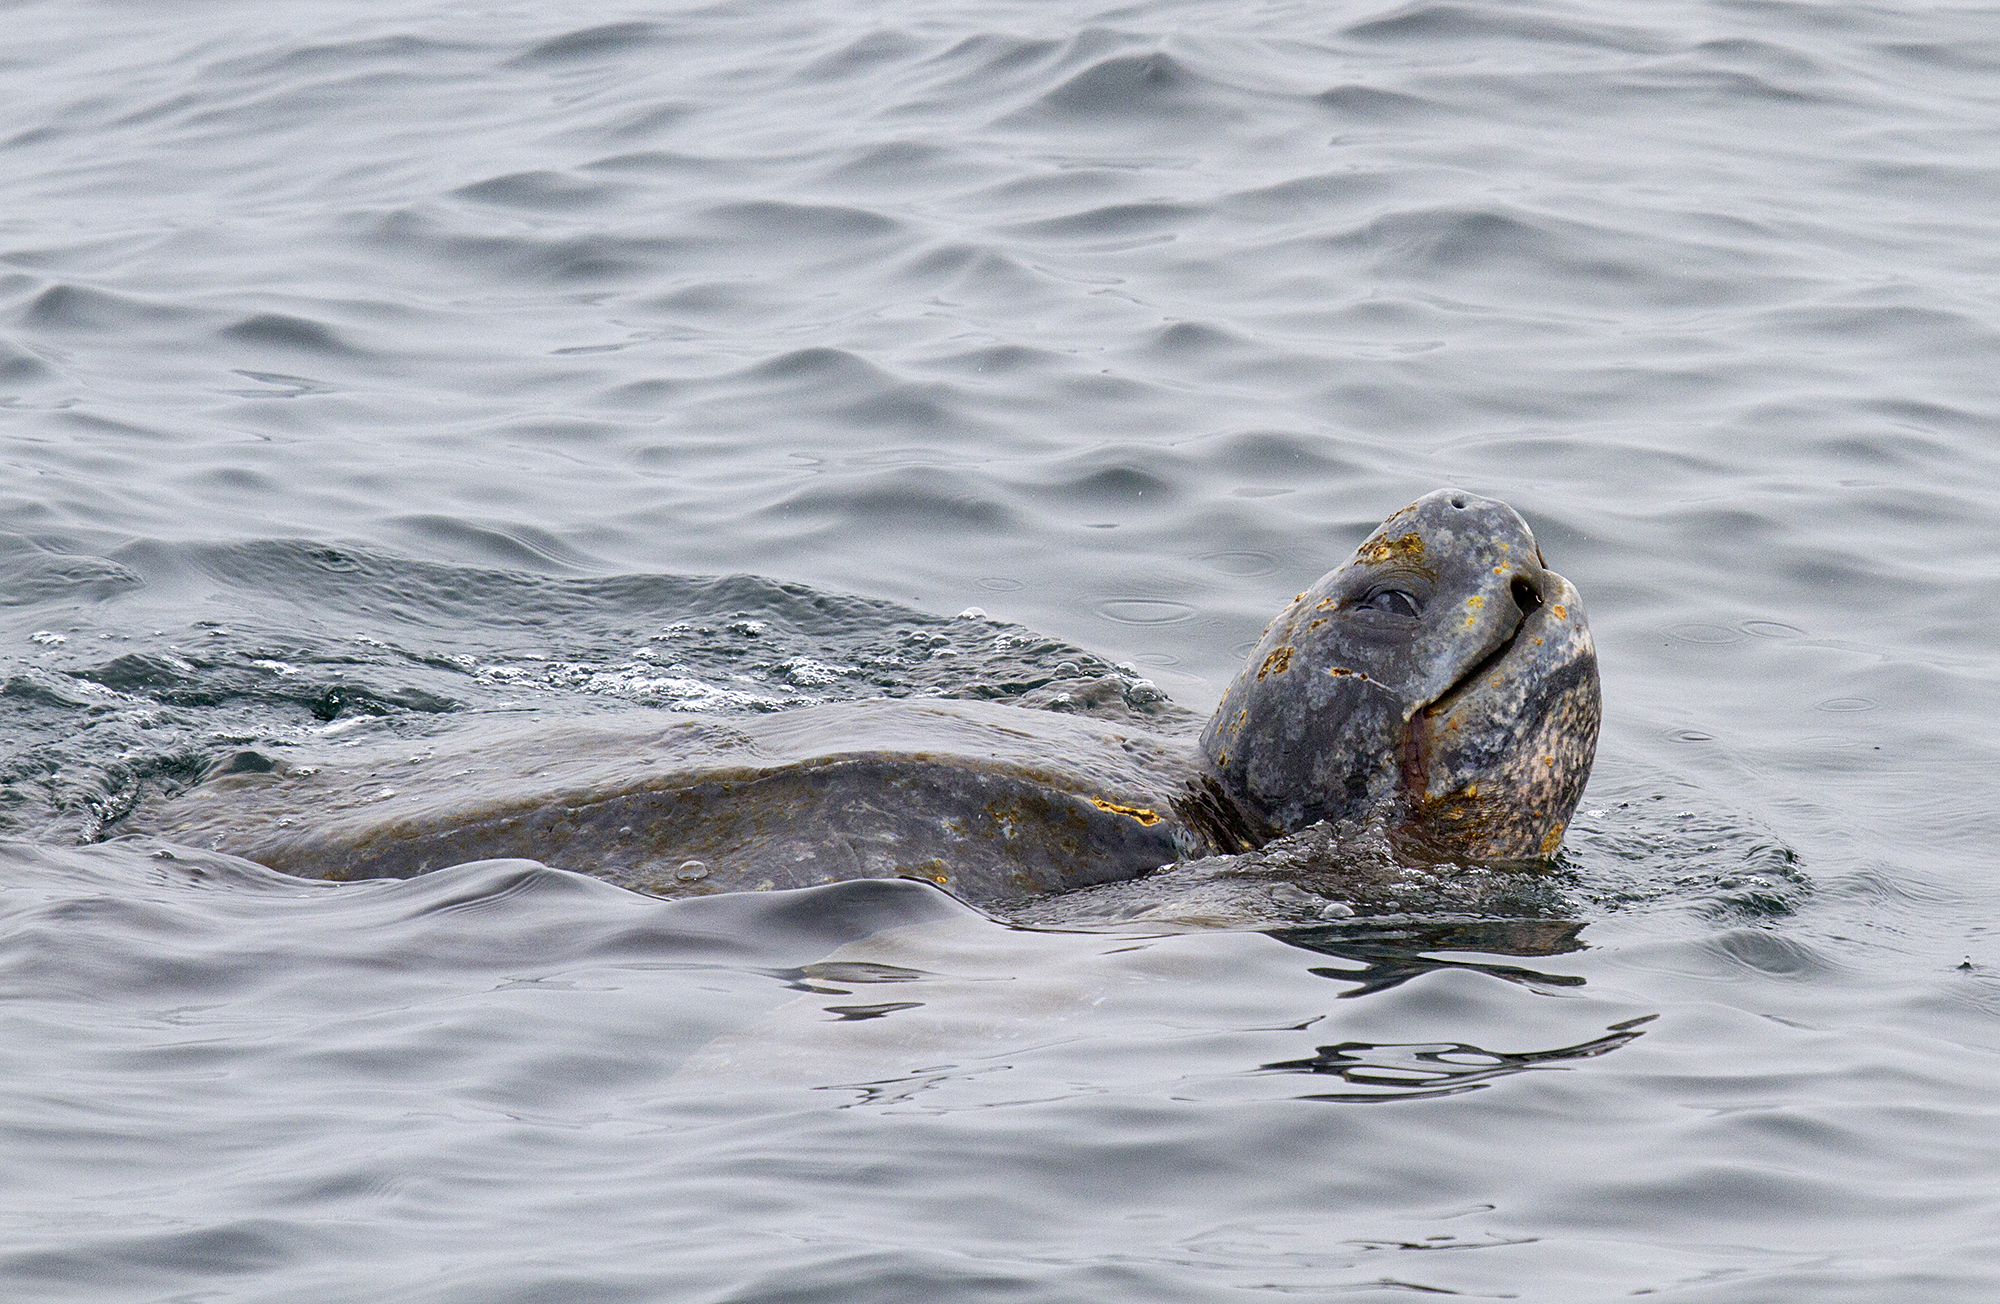 Leatherback_turtle_MG_8834crop